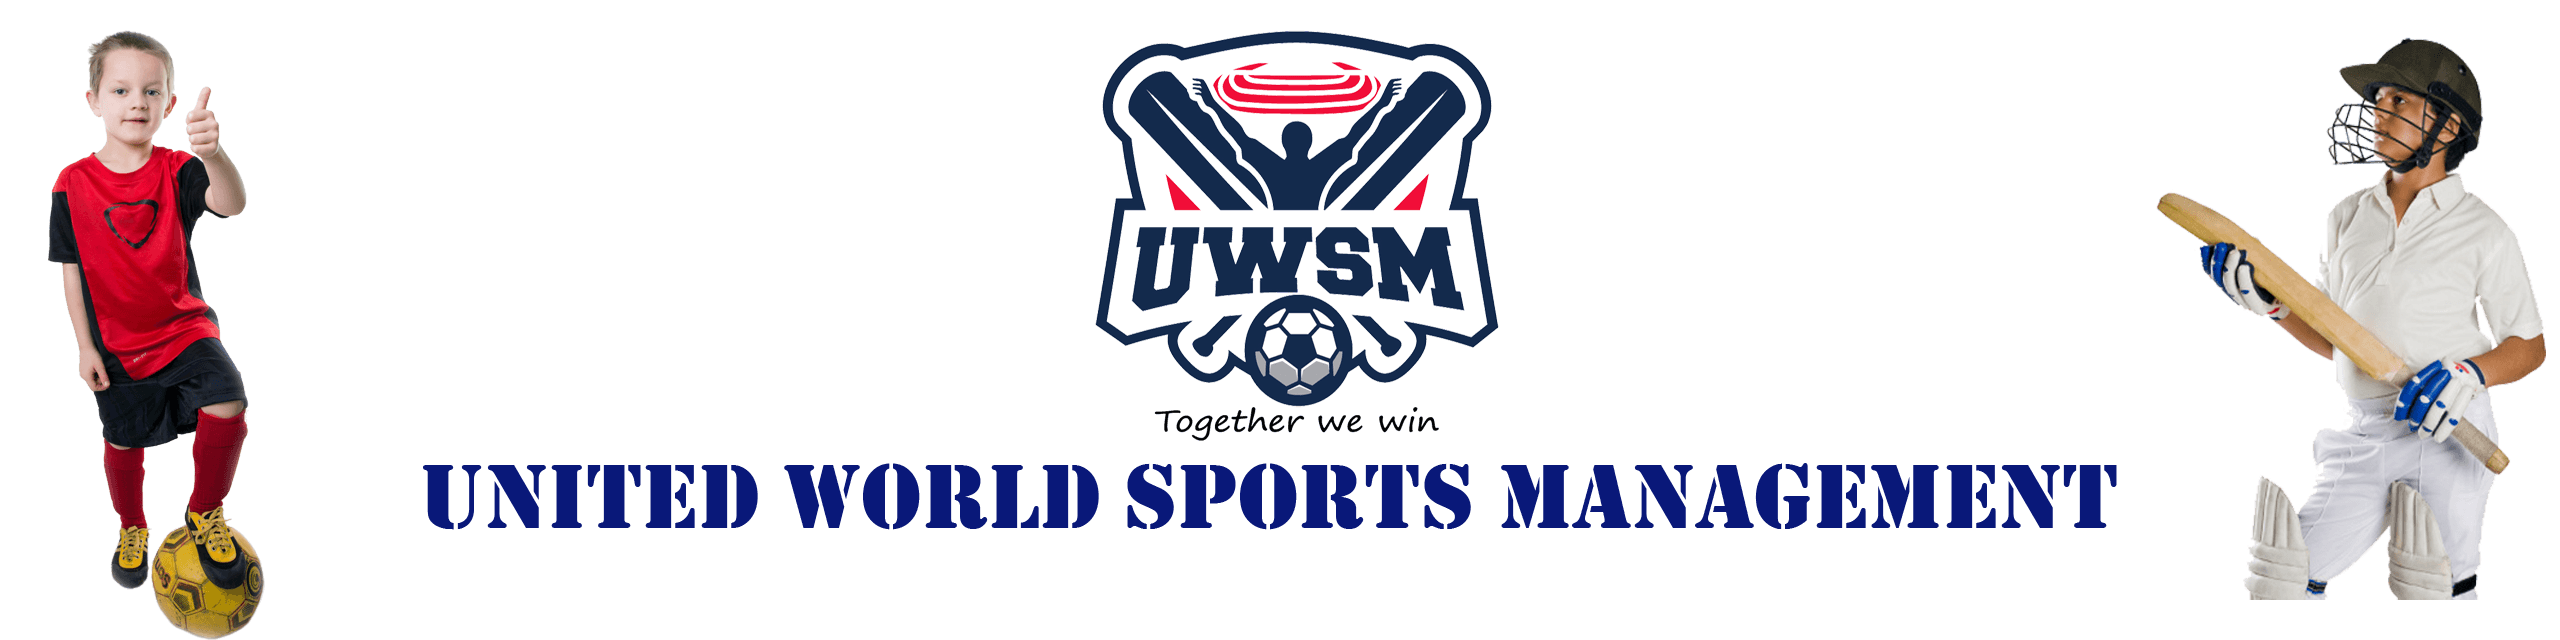 United World Sports Management